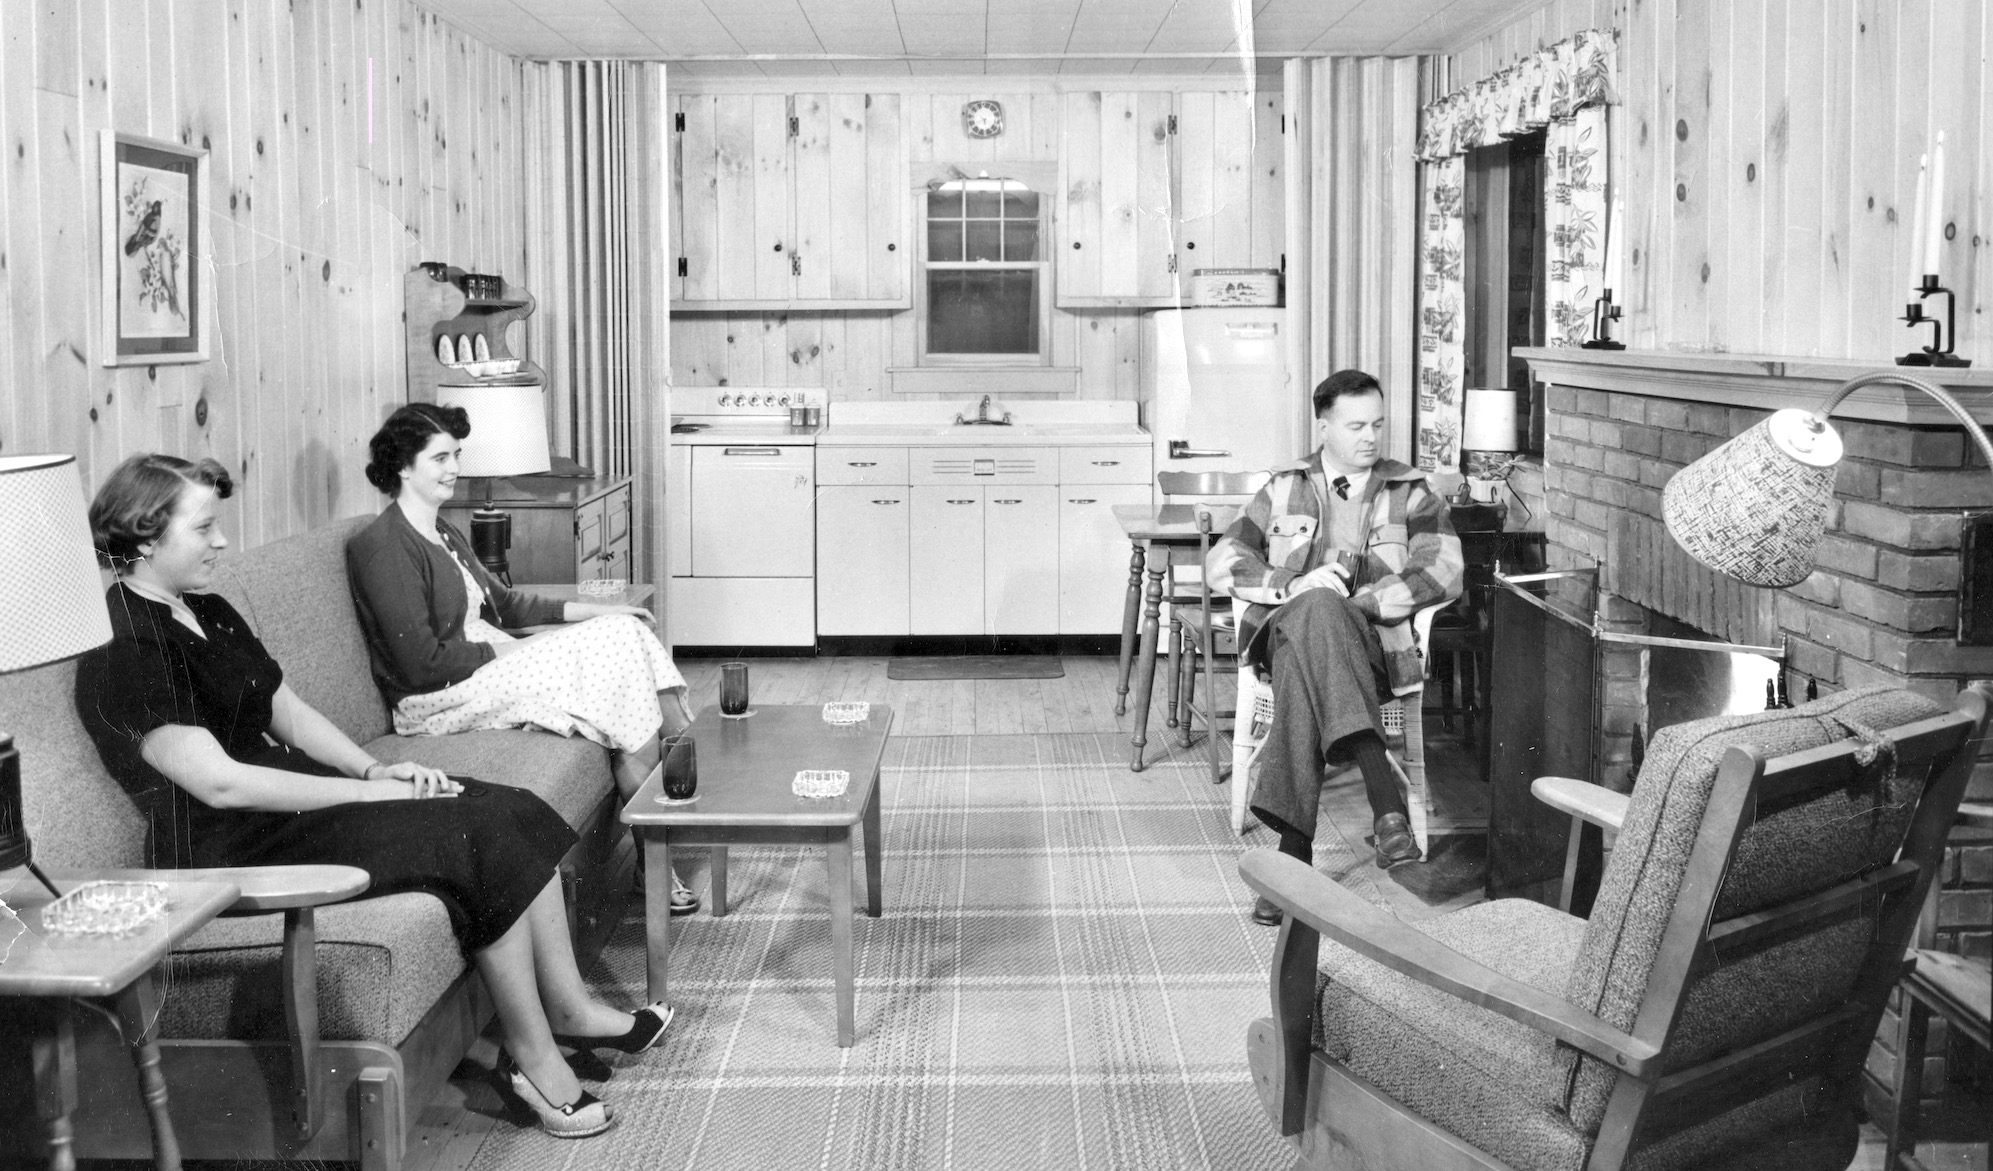 Takundewide Cottage interior, 1954